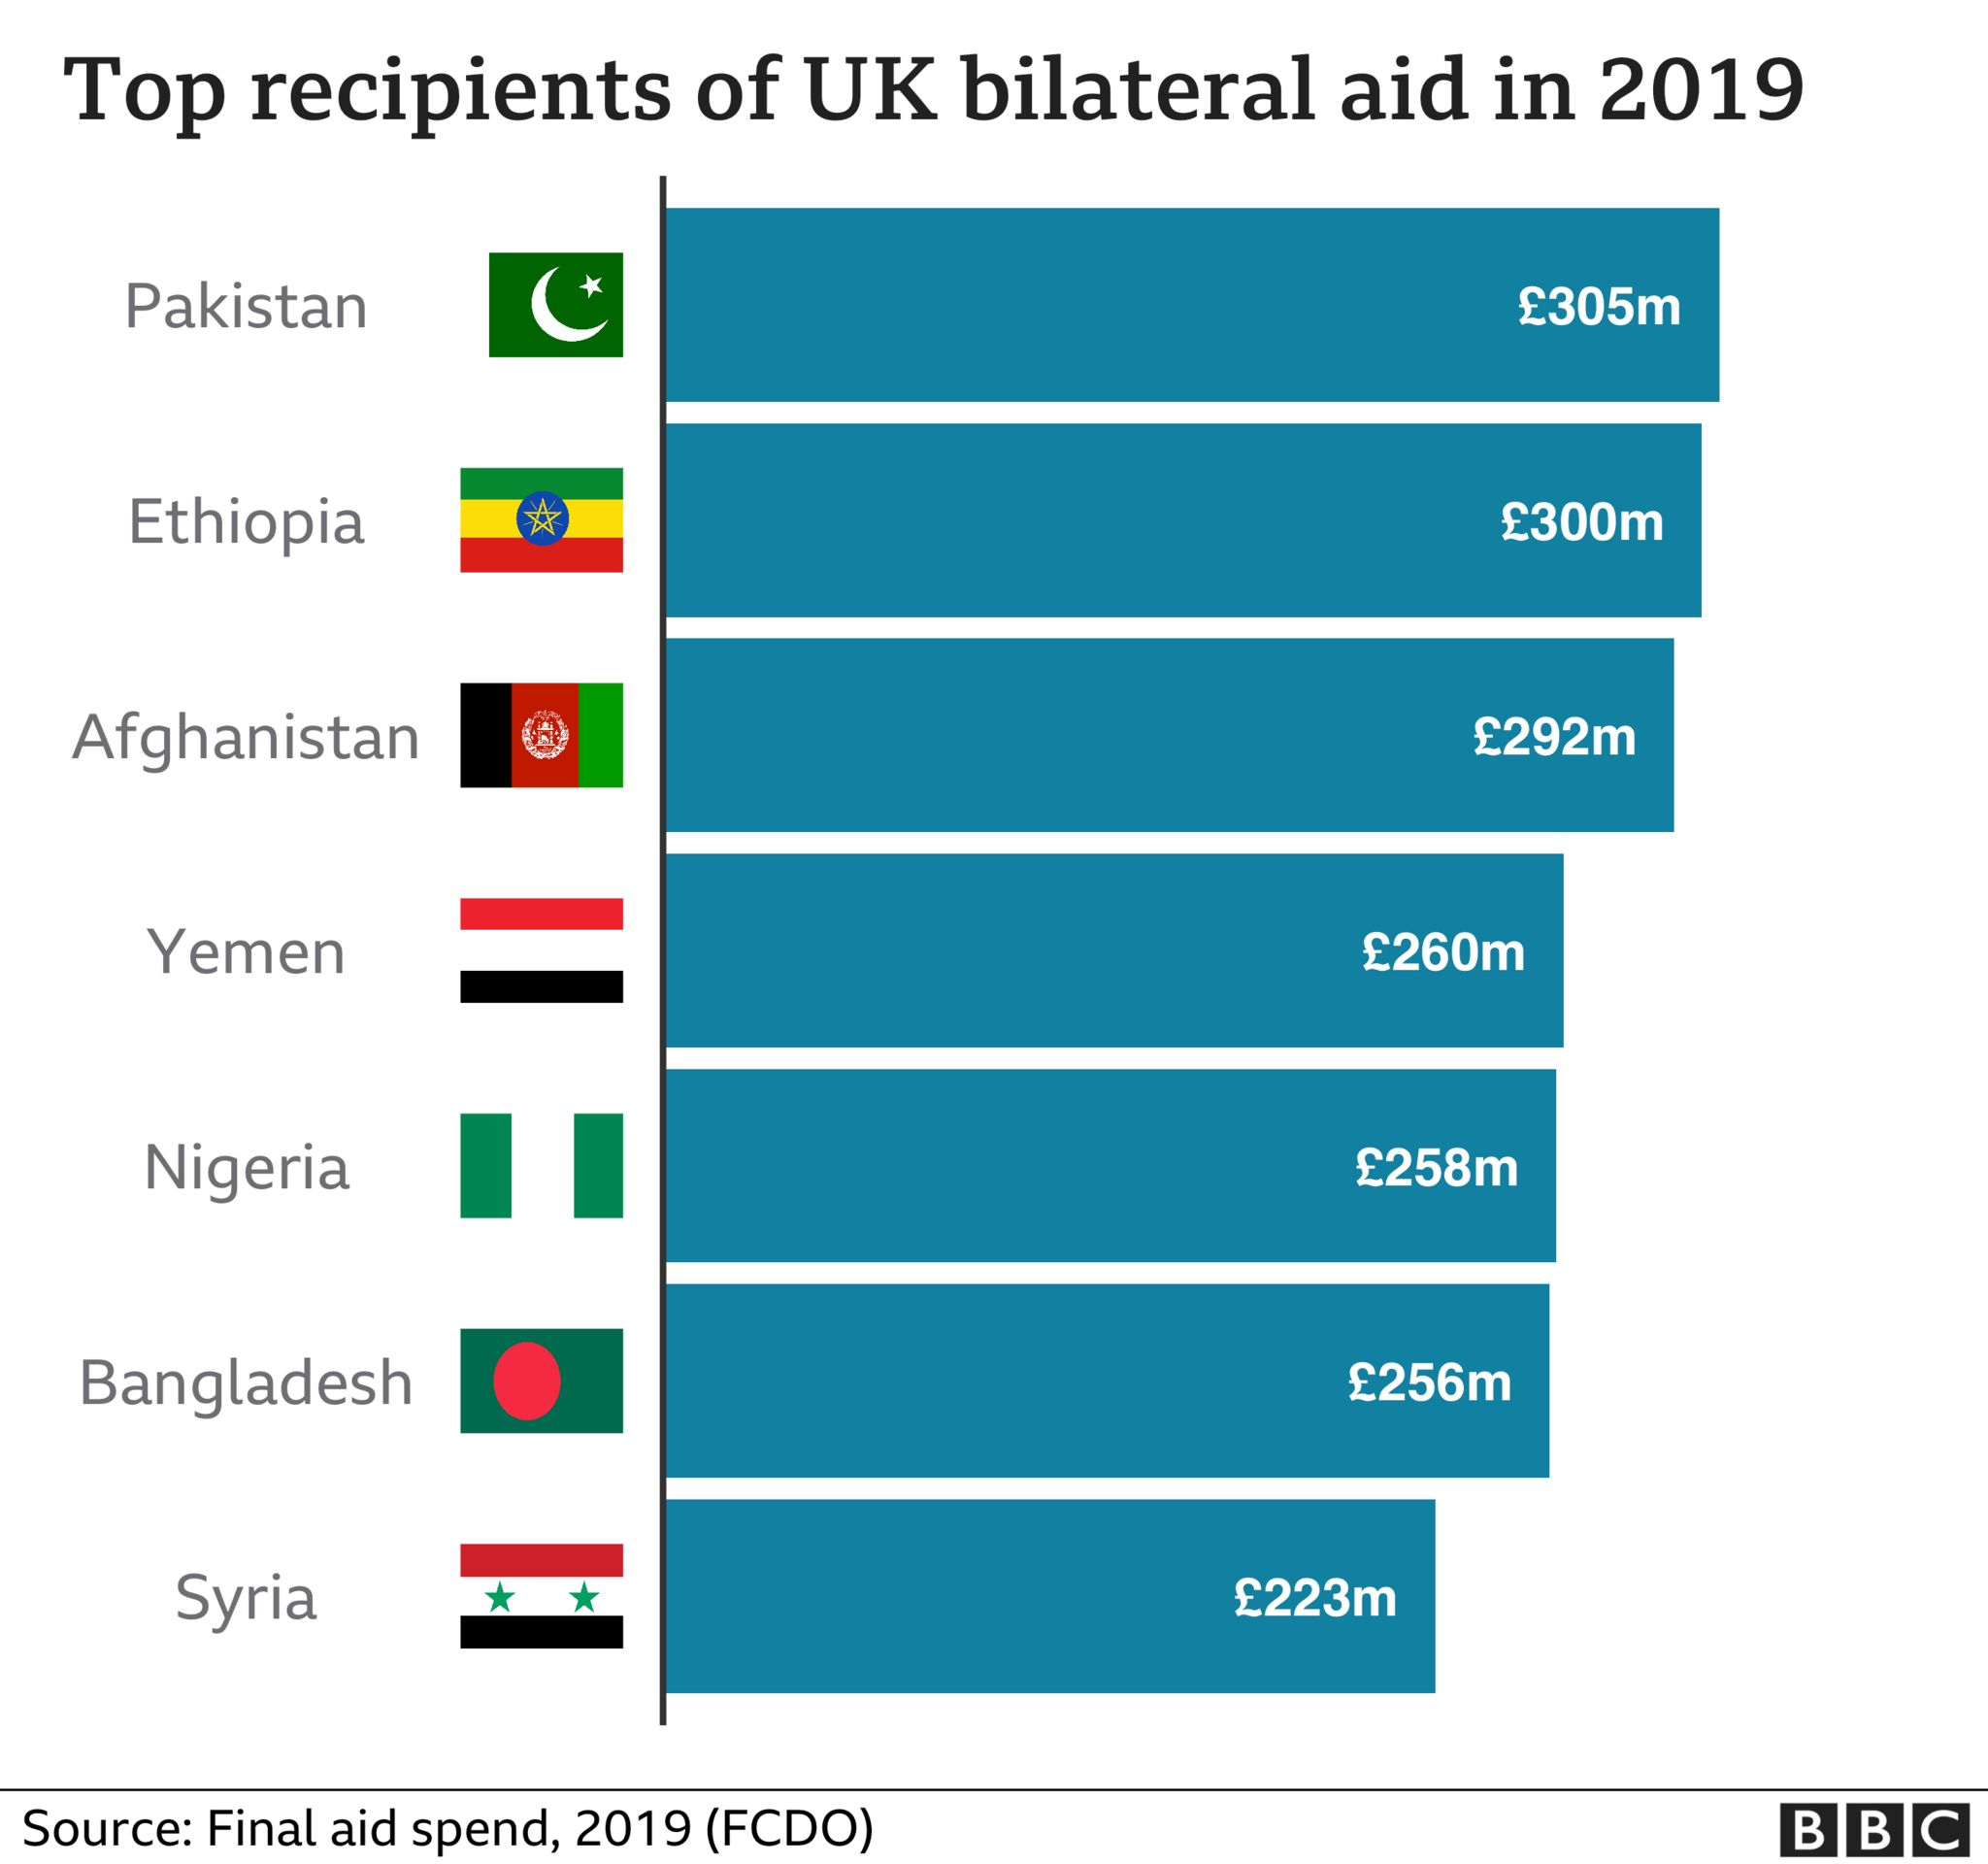 Bar chart top recipients of UK bilateral aid by country 2019